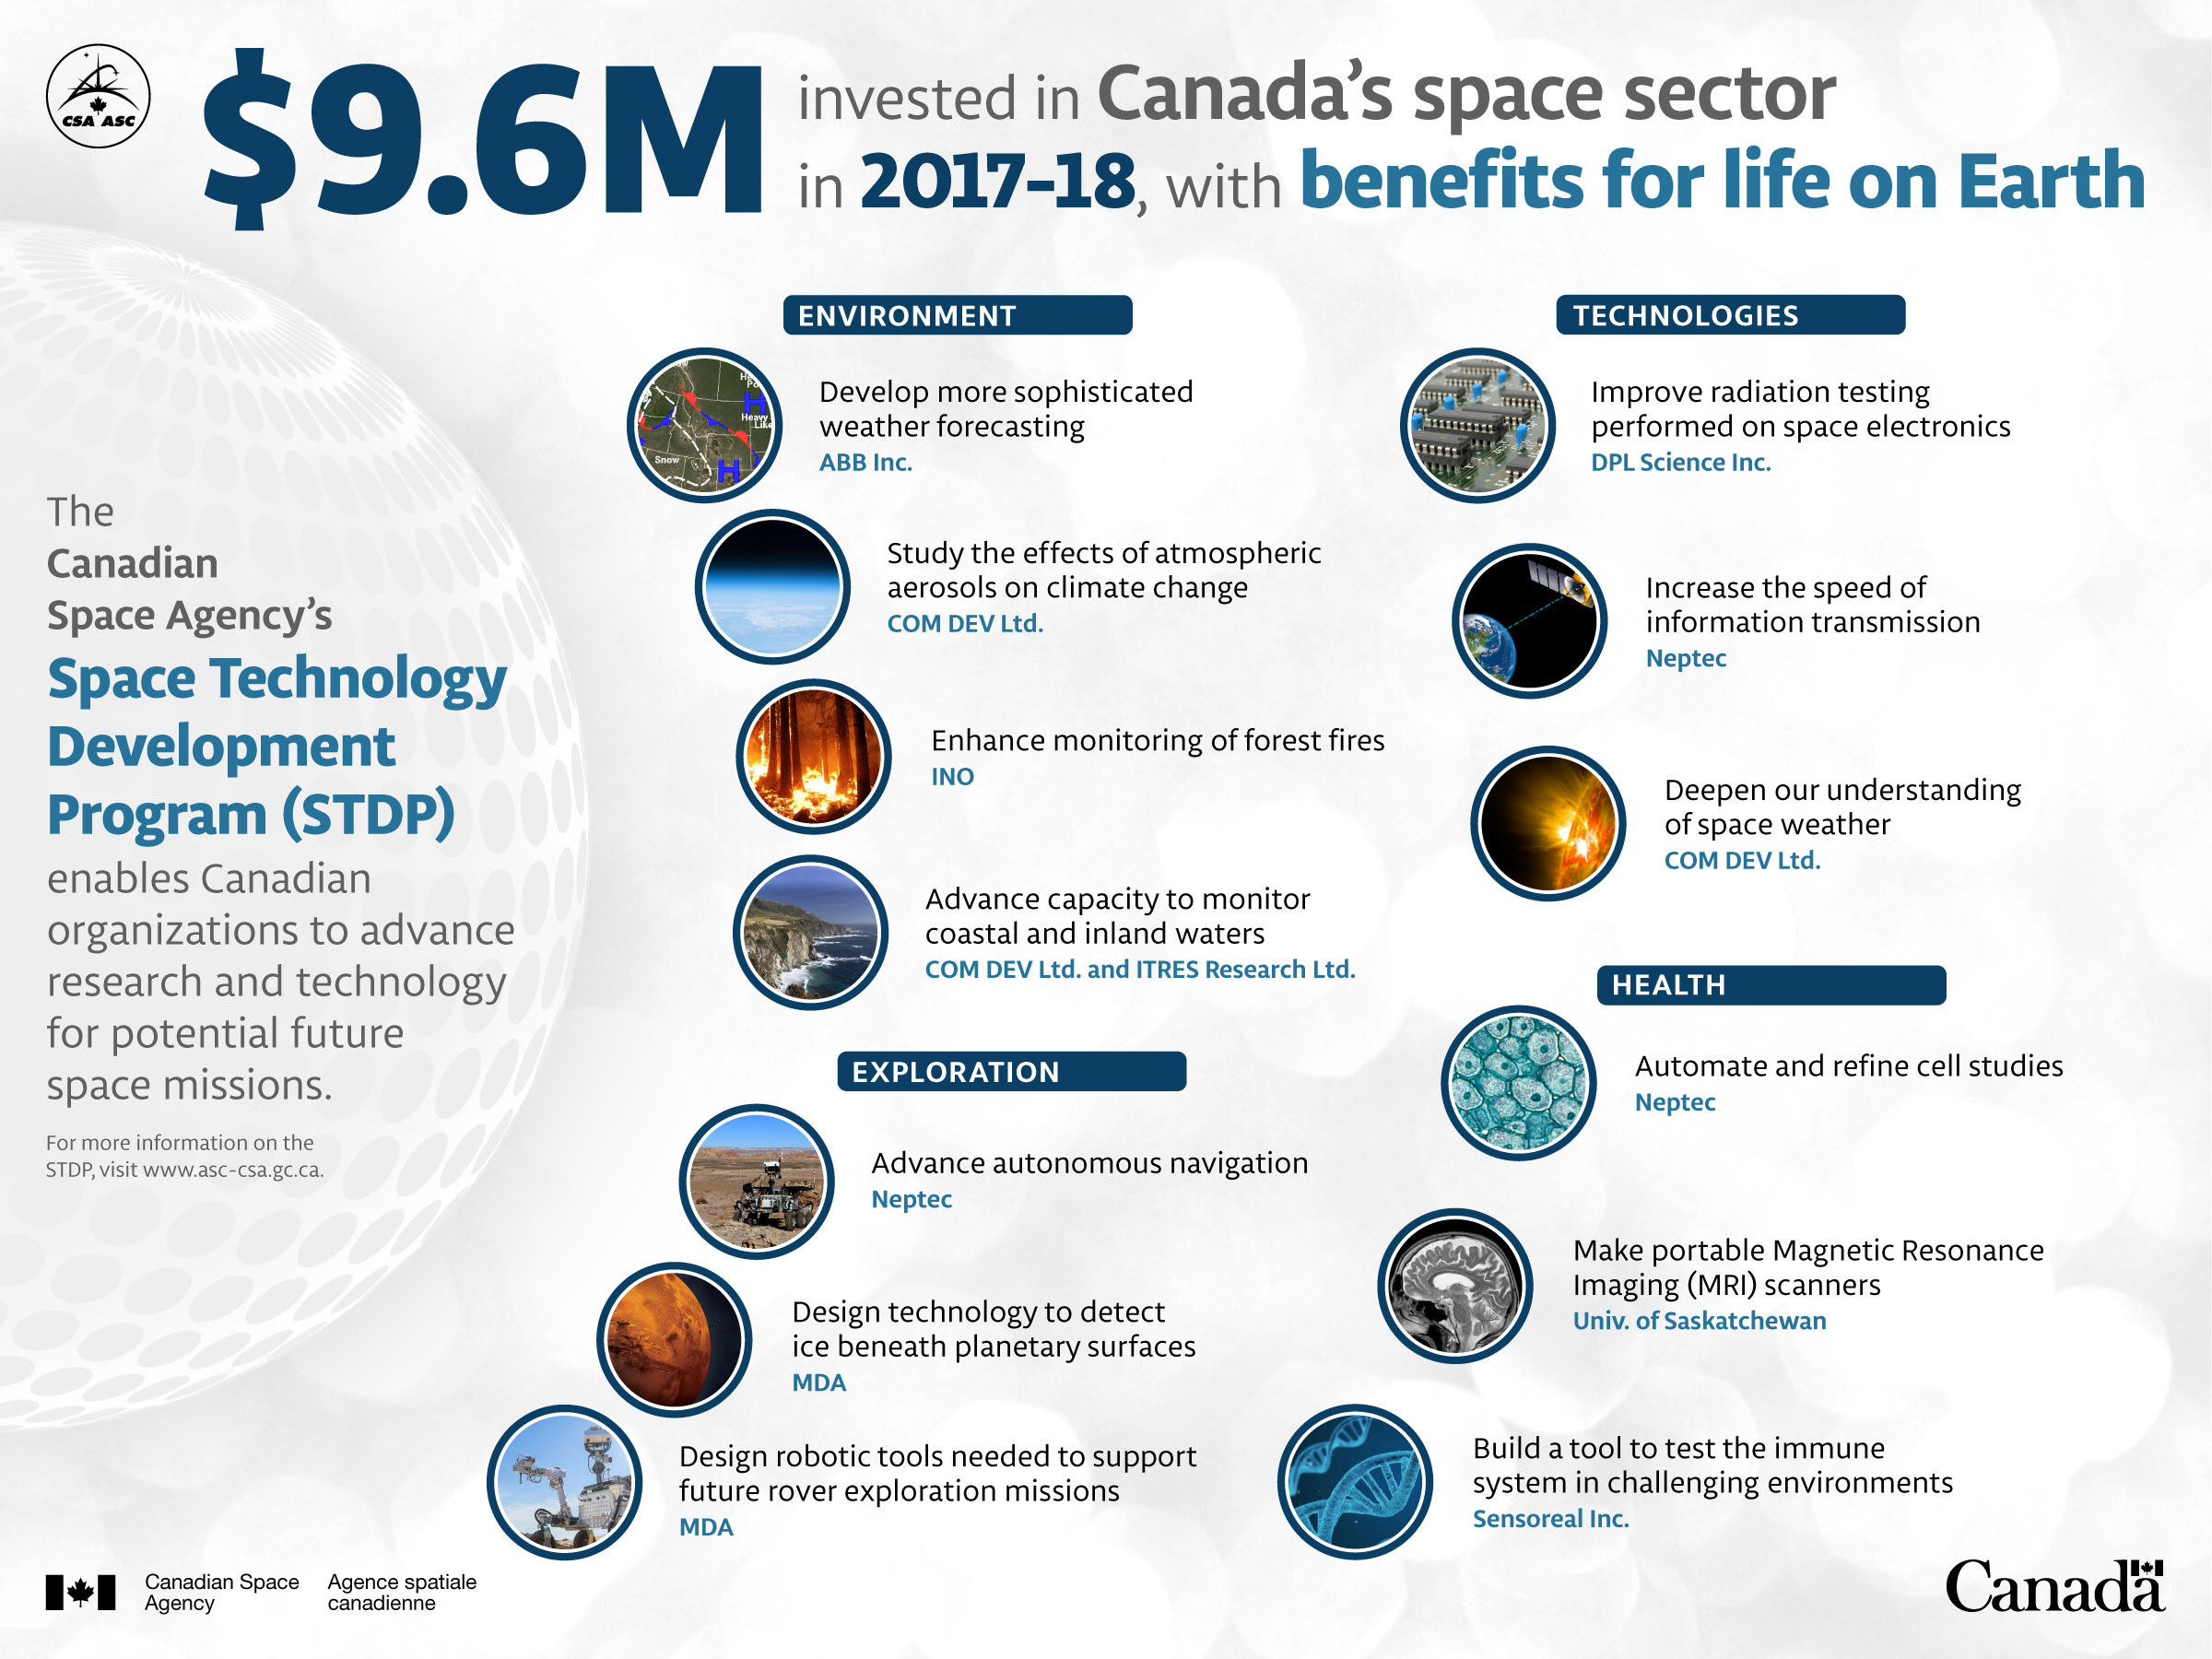 Development of Enabling Space Technologies infographic